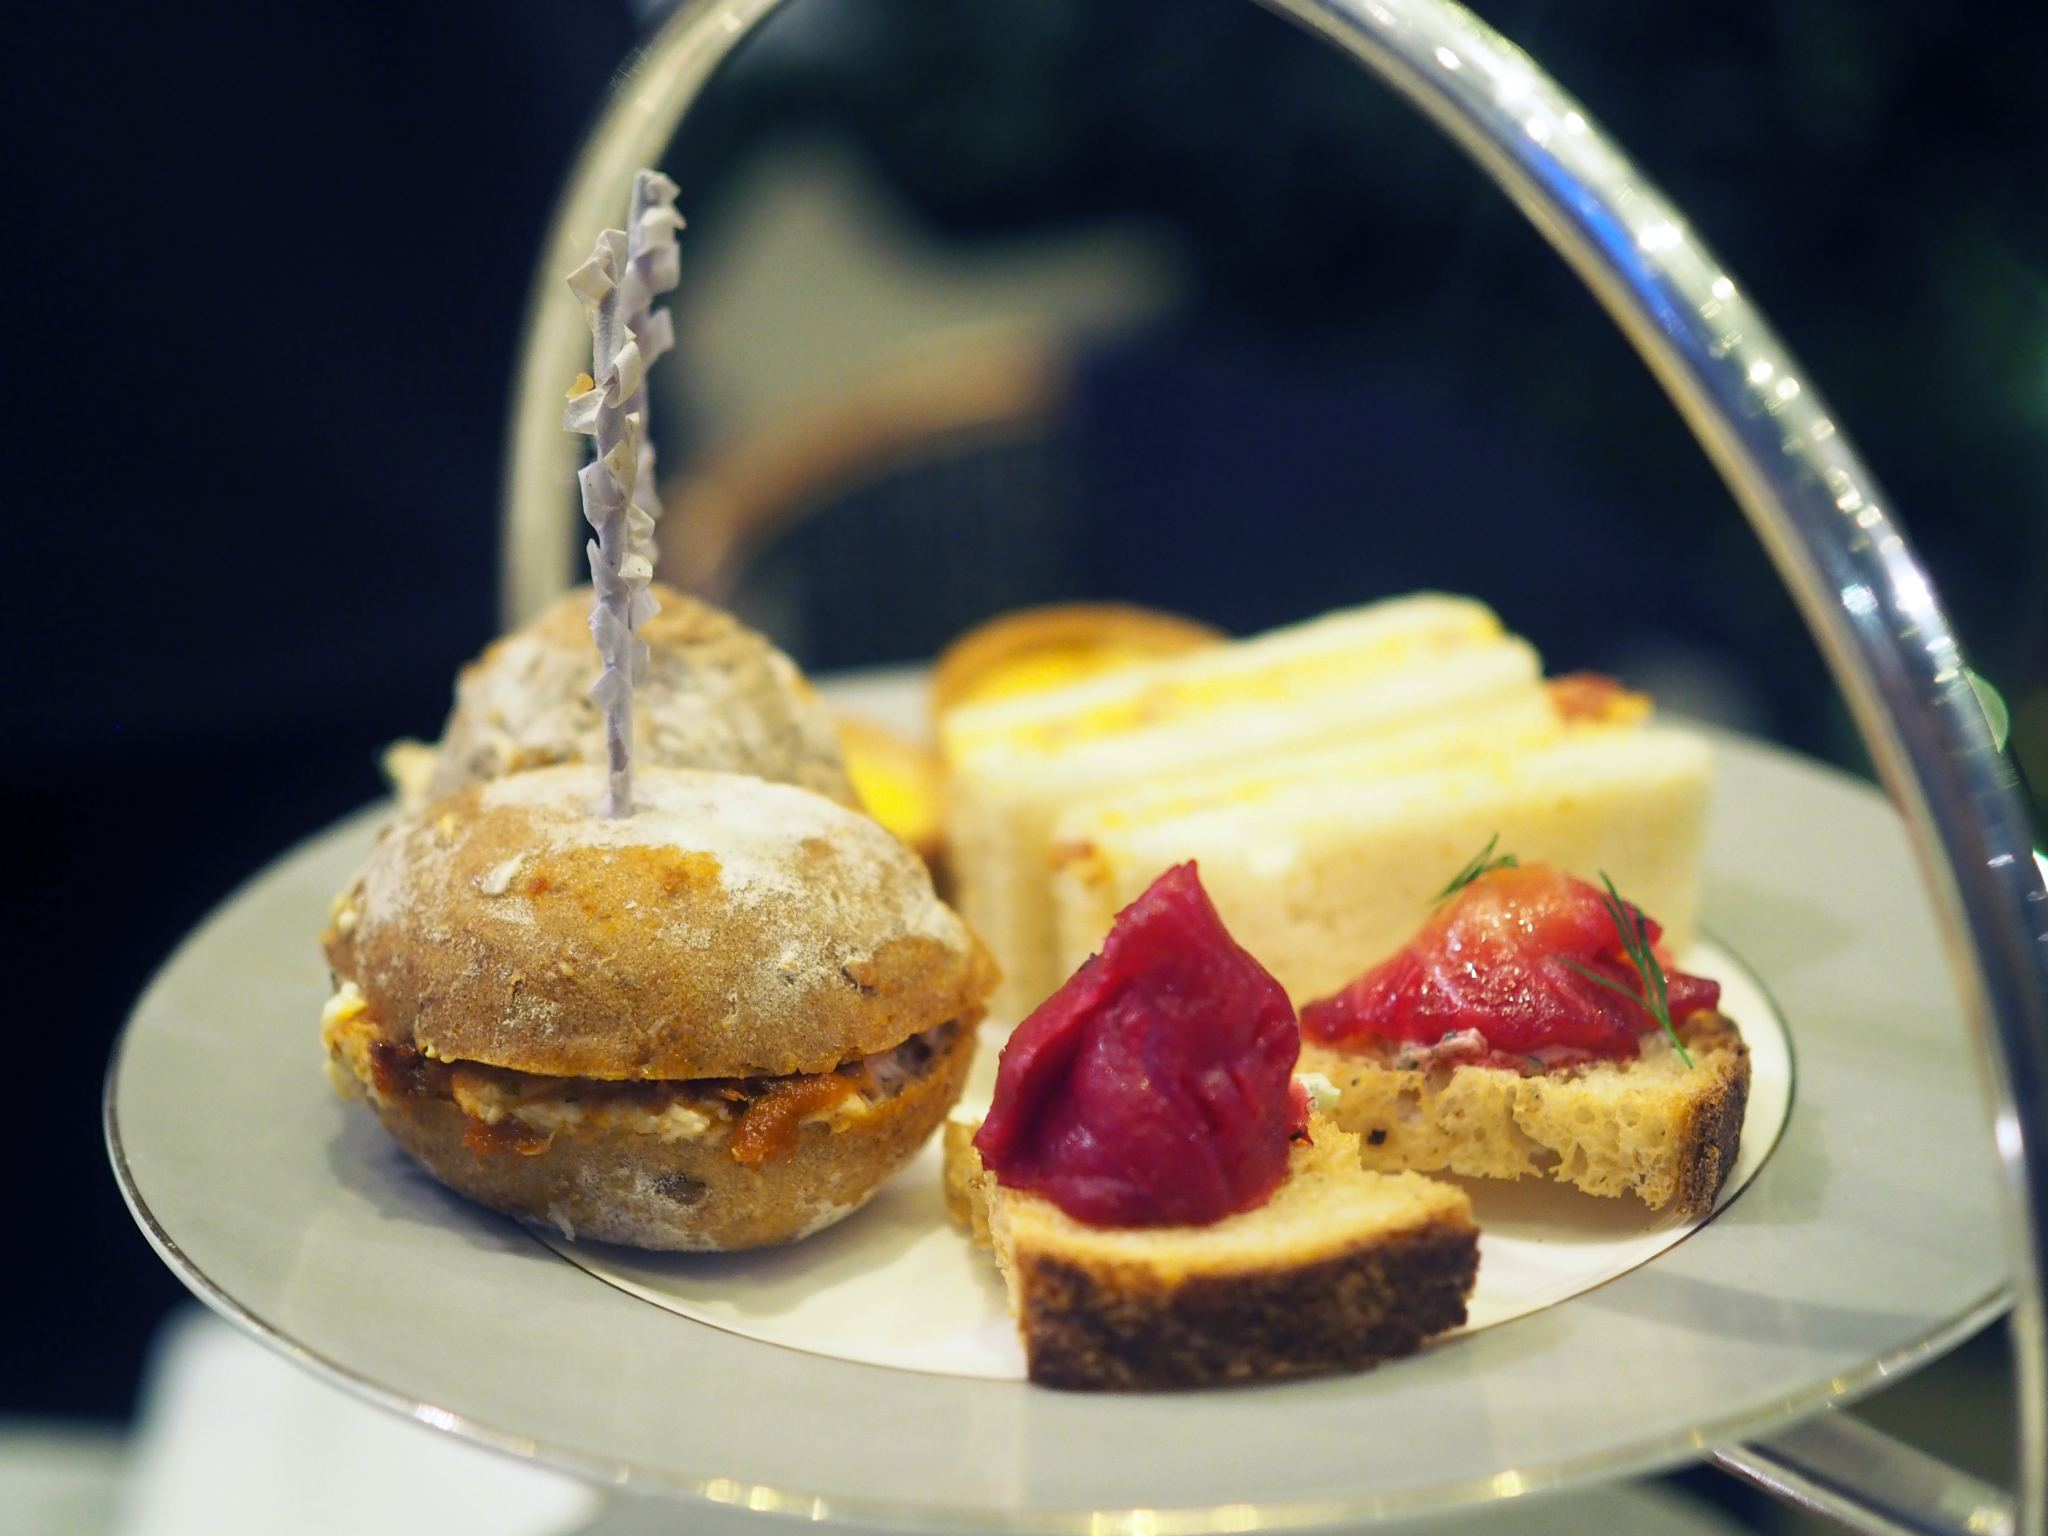 Candice Brown X Dalloway Terrace Afternoon Tea